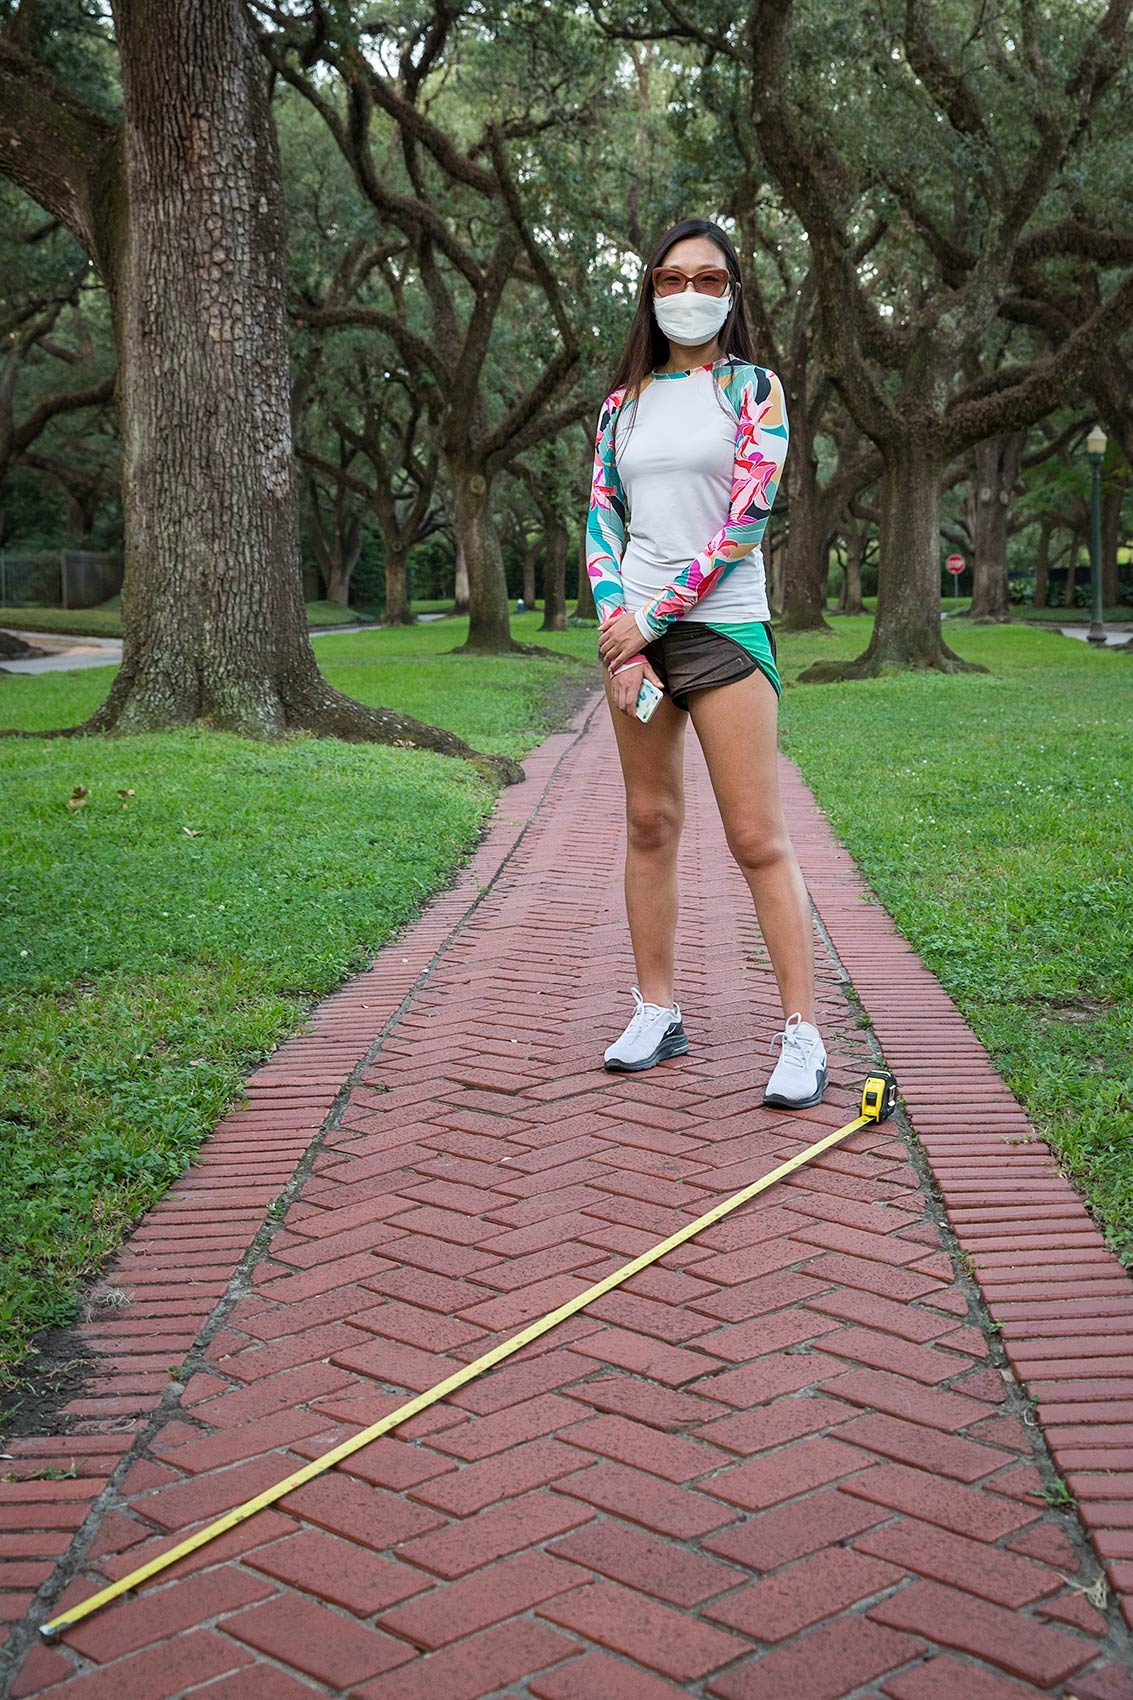 Young woman in mask on tree-lined walkway with long tape measure as a symbol of Covid-19 social distance